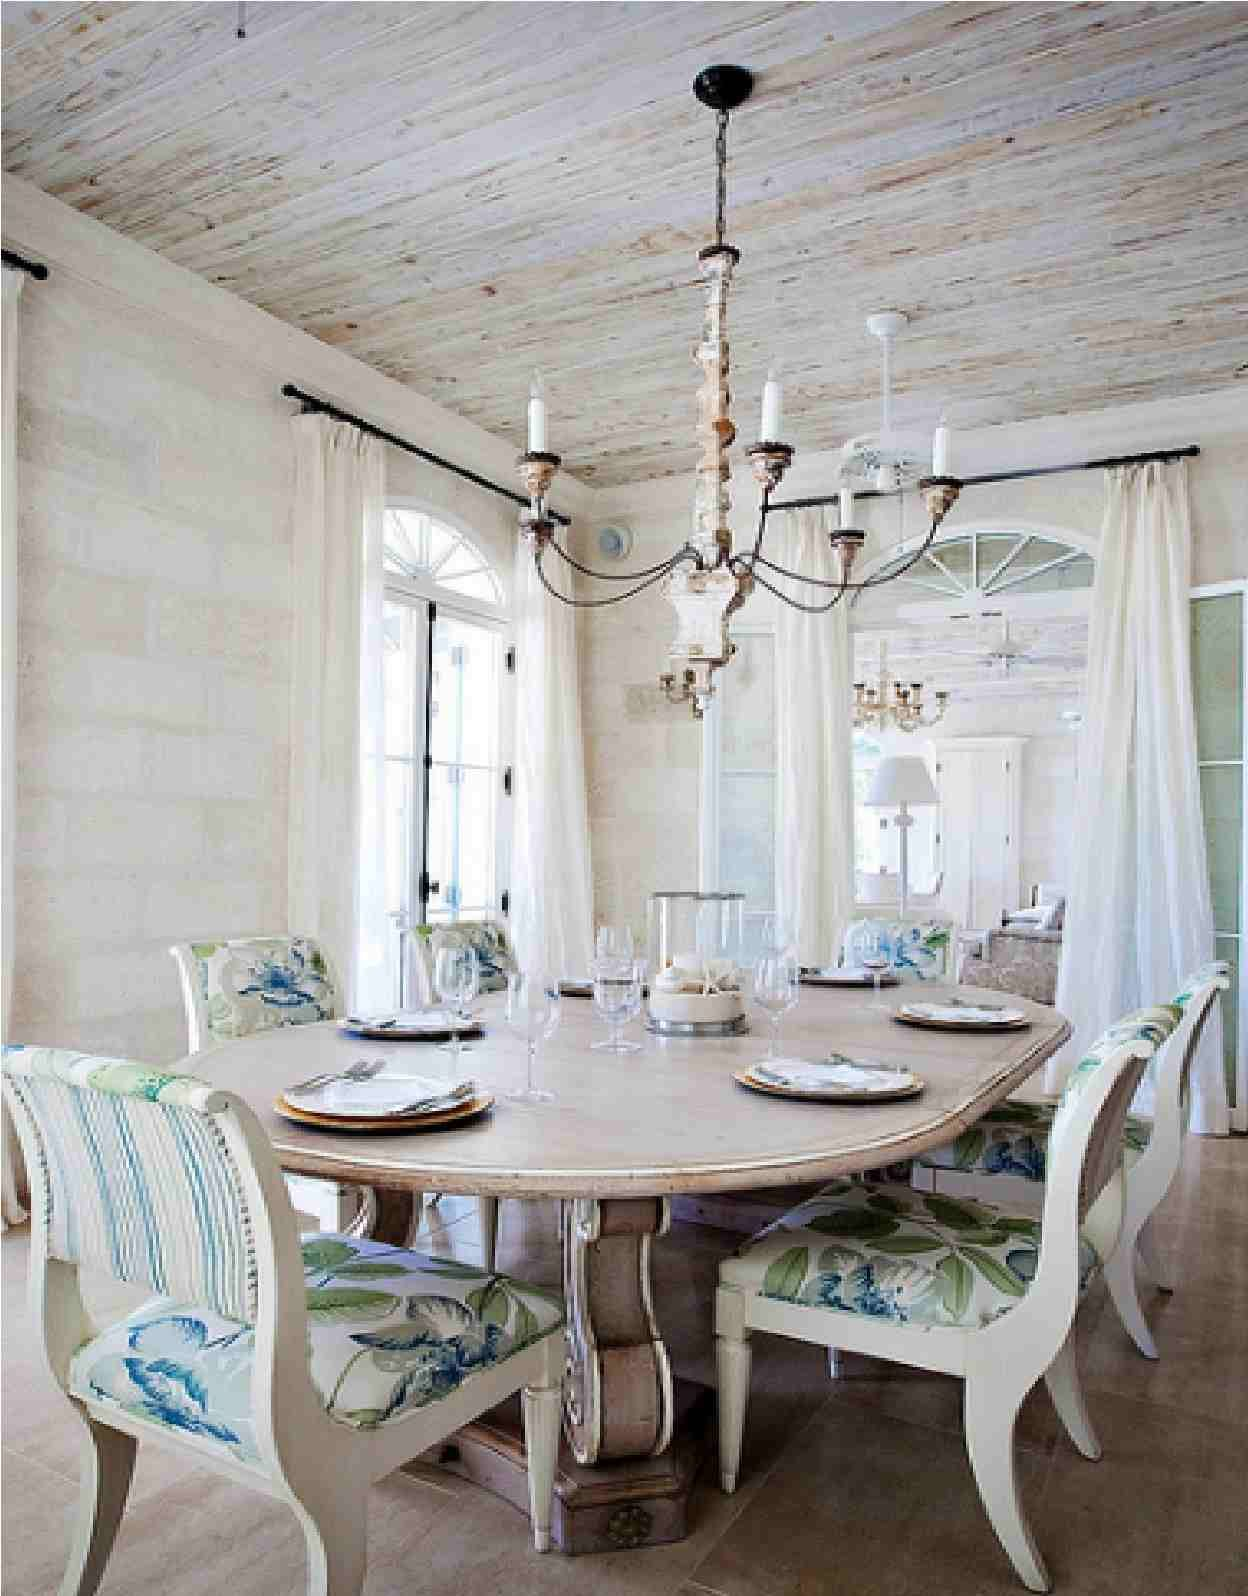 Rustic Elegant Interior Decorating